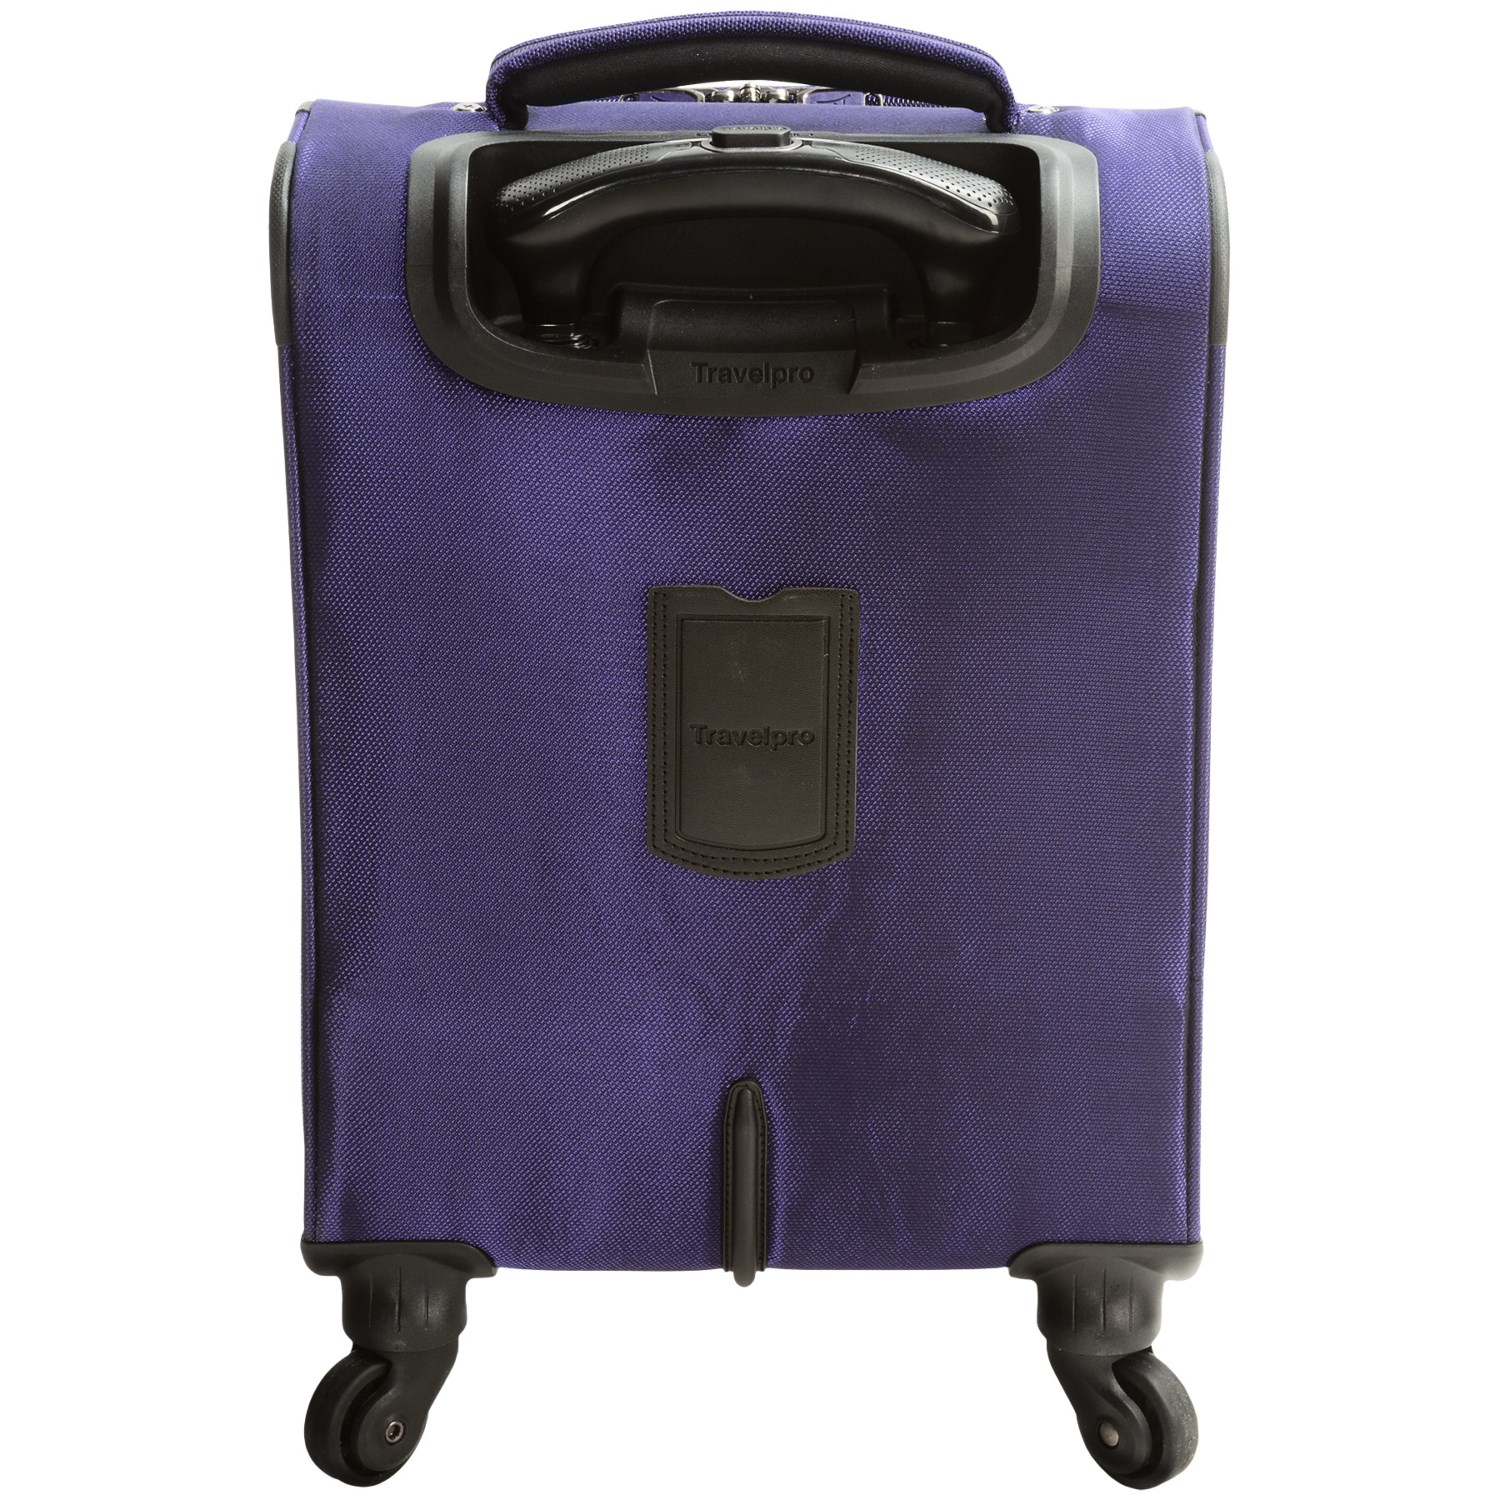 travelpro anthem select carryon compact boarding bag 17u201d expandable - Travel Pro Luggage